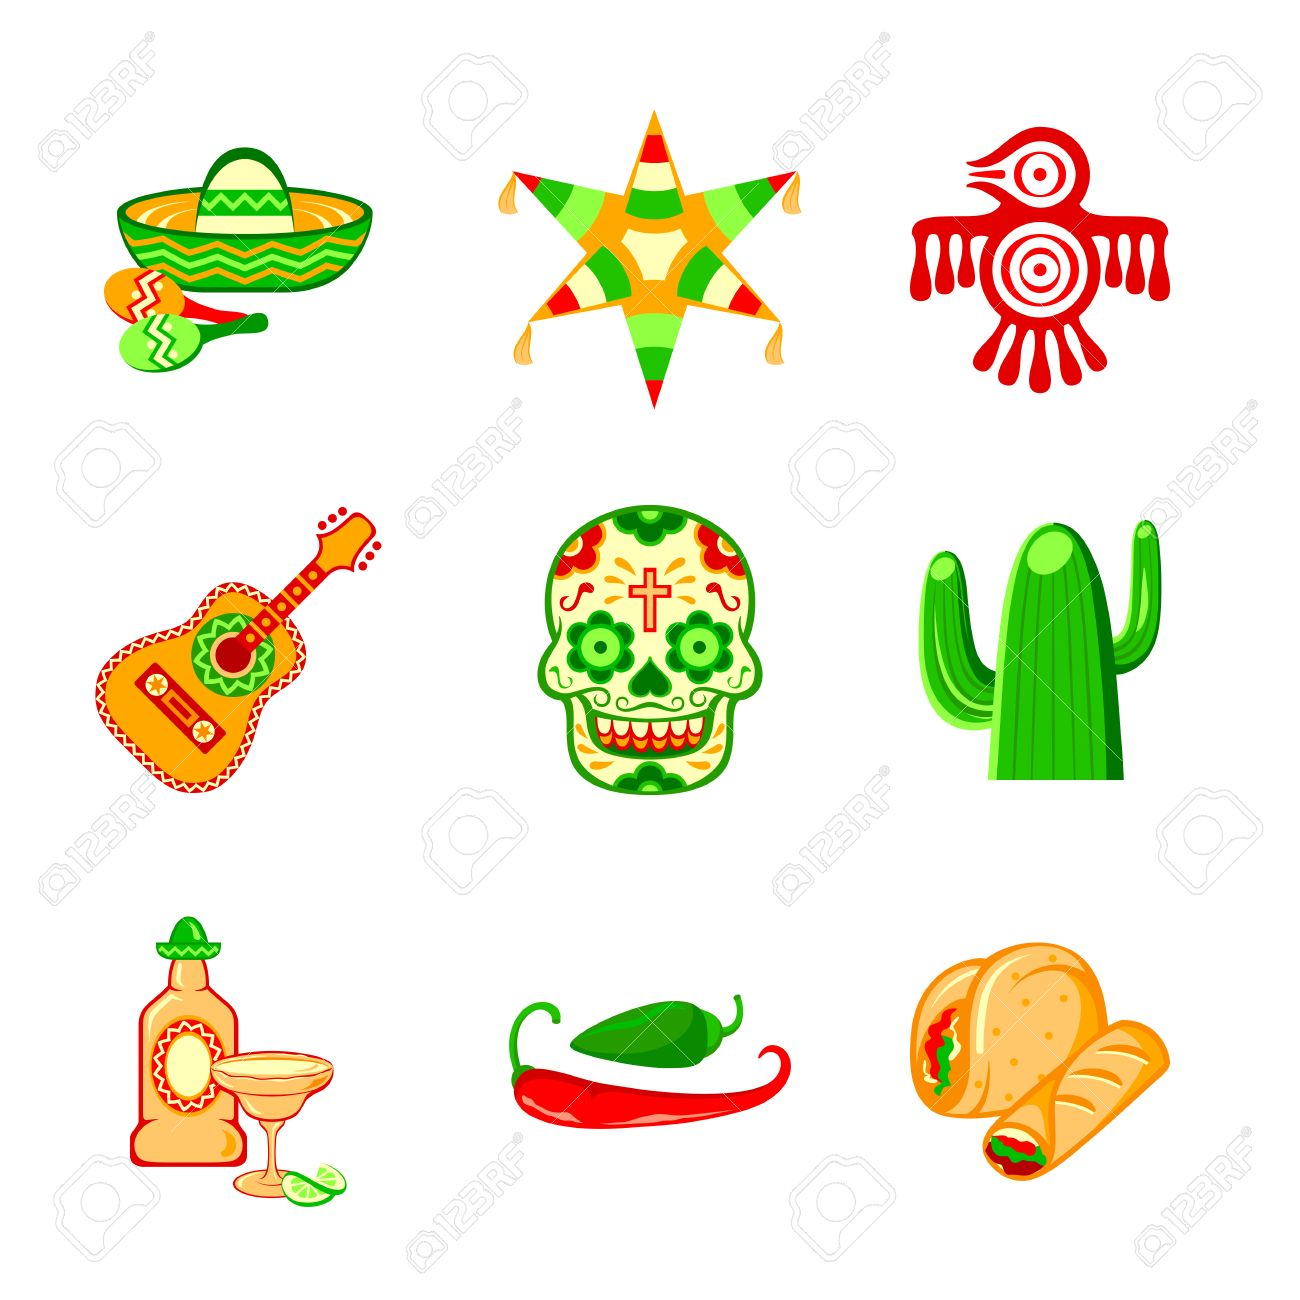 Colorful Culture Symbols Food And Objects Of Mexico Royalty Free